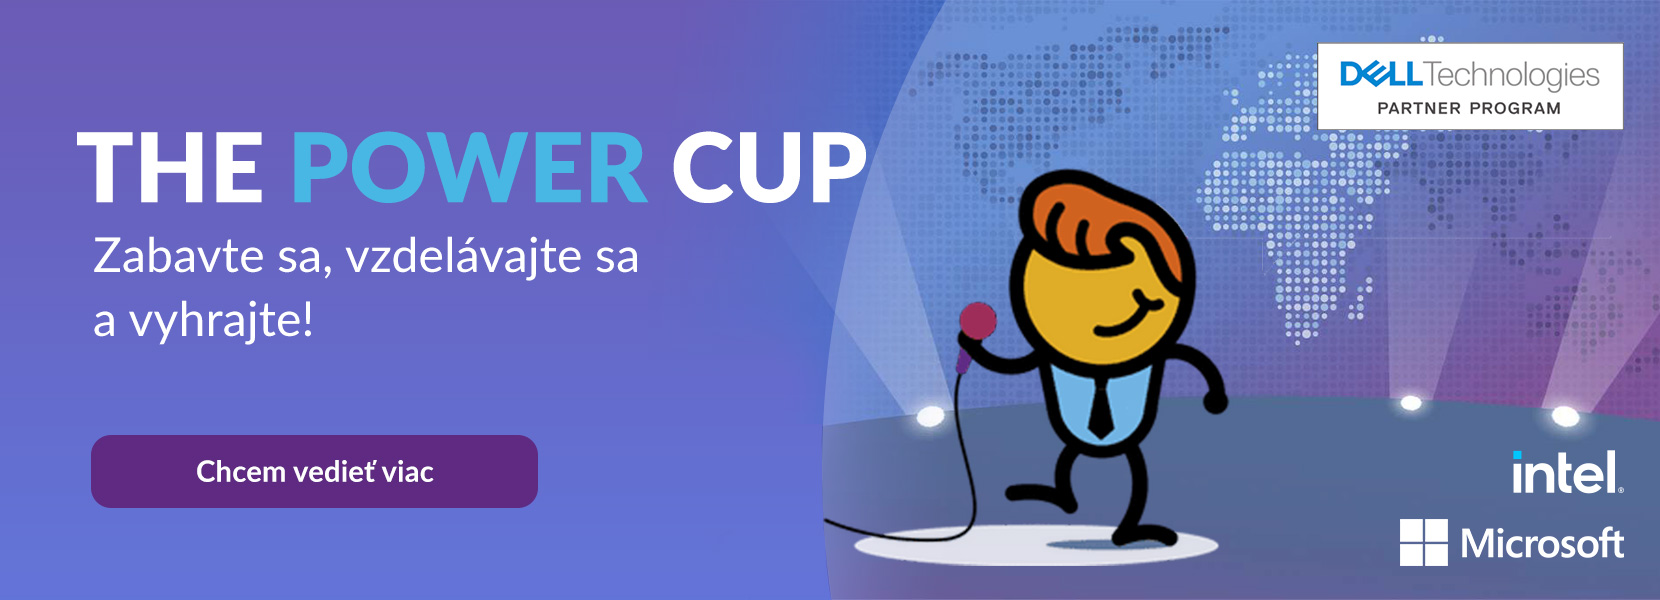 Dell Technologies | THE POWER CUP